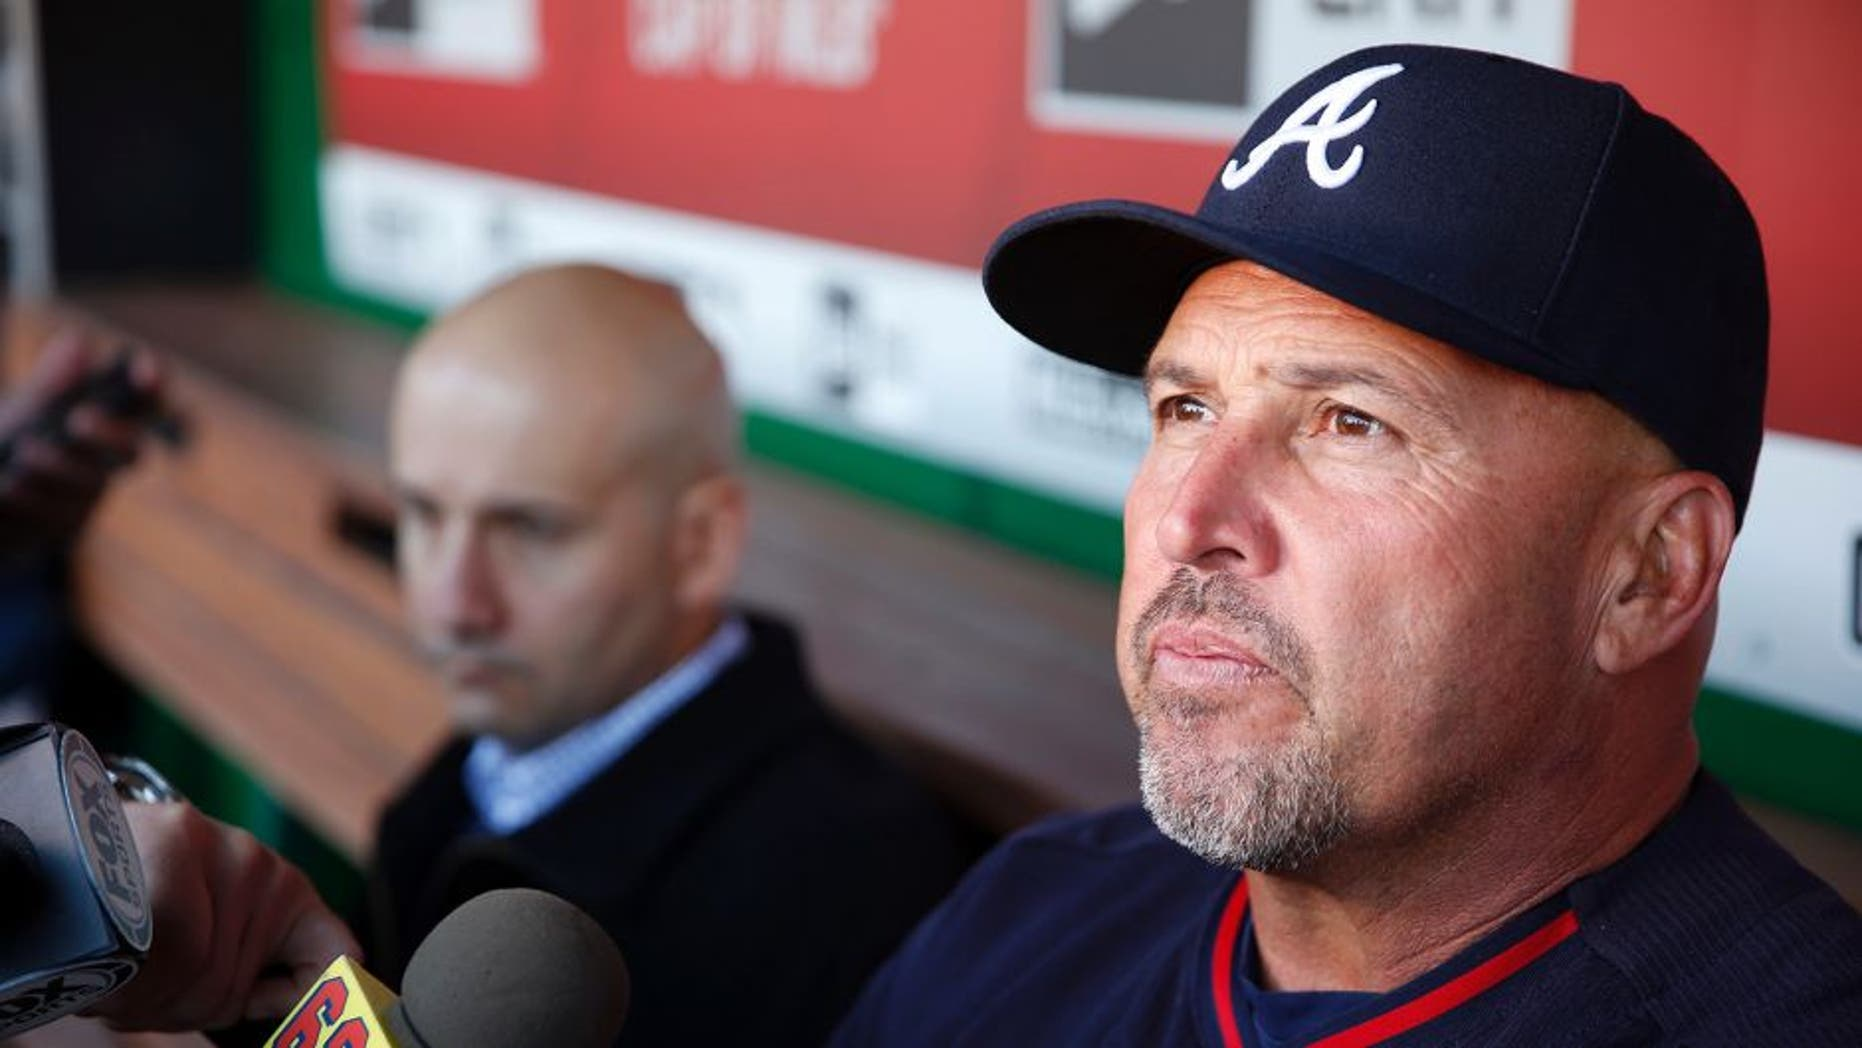 FILE - In this April 13, 2016, file photo, Atlanta Braves manager Fredi Gonzalez, right, with general manager John Coppolella sitting at left, talks with the media before a baseball game against the Washington Nationals at Nationals Park, in Washington. The Atlanta Braves have fired manager Fredi Gonzalez, who couldn't survive the worst record in the majors. Braves general manager John Coppolella confirmed the firing of Gonzalez, in his sixth season, Tuesday, May 17, 2016. (AP Photo/Alex Brandon, File)